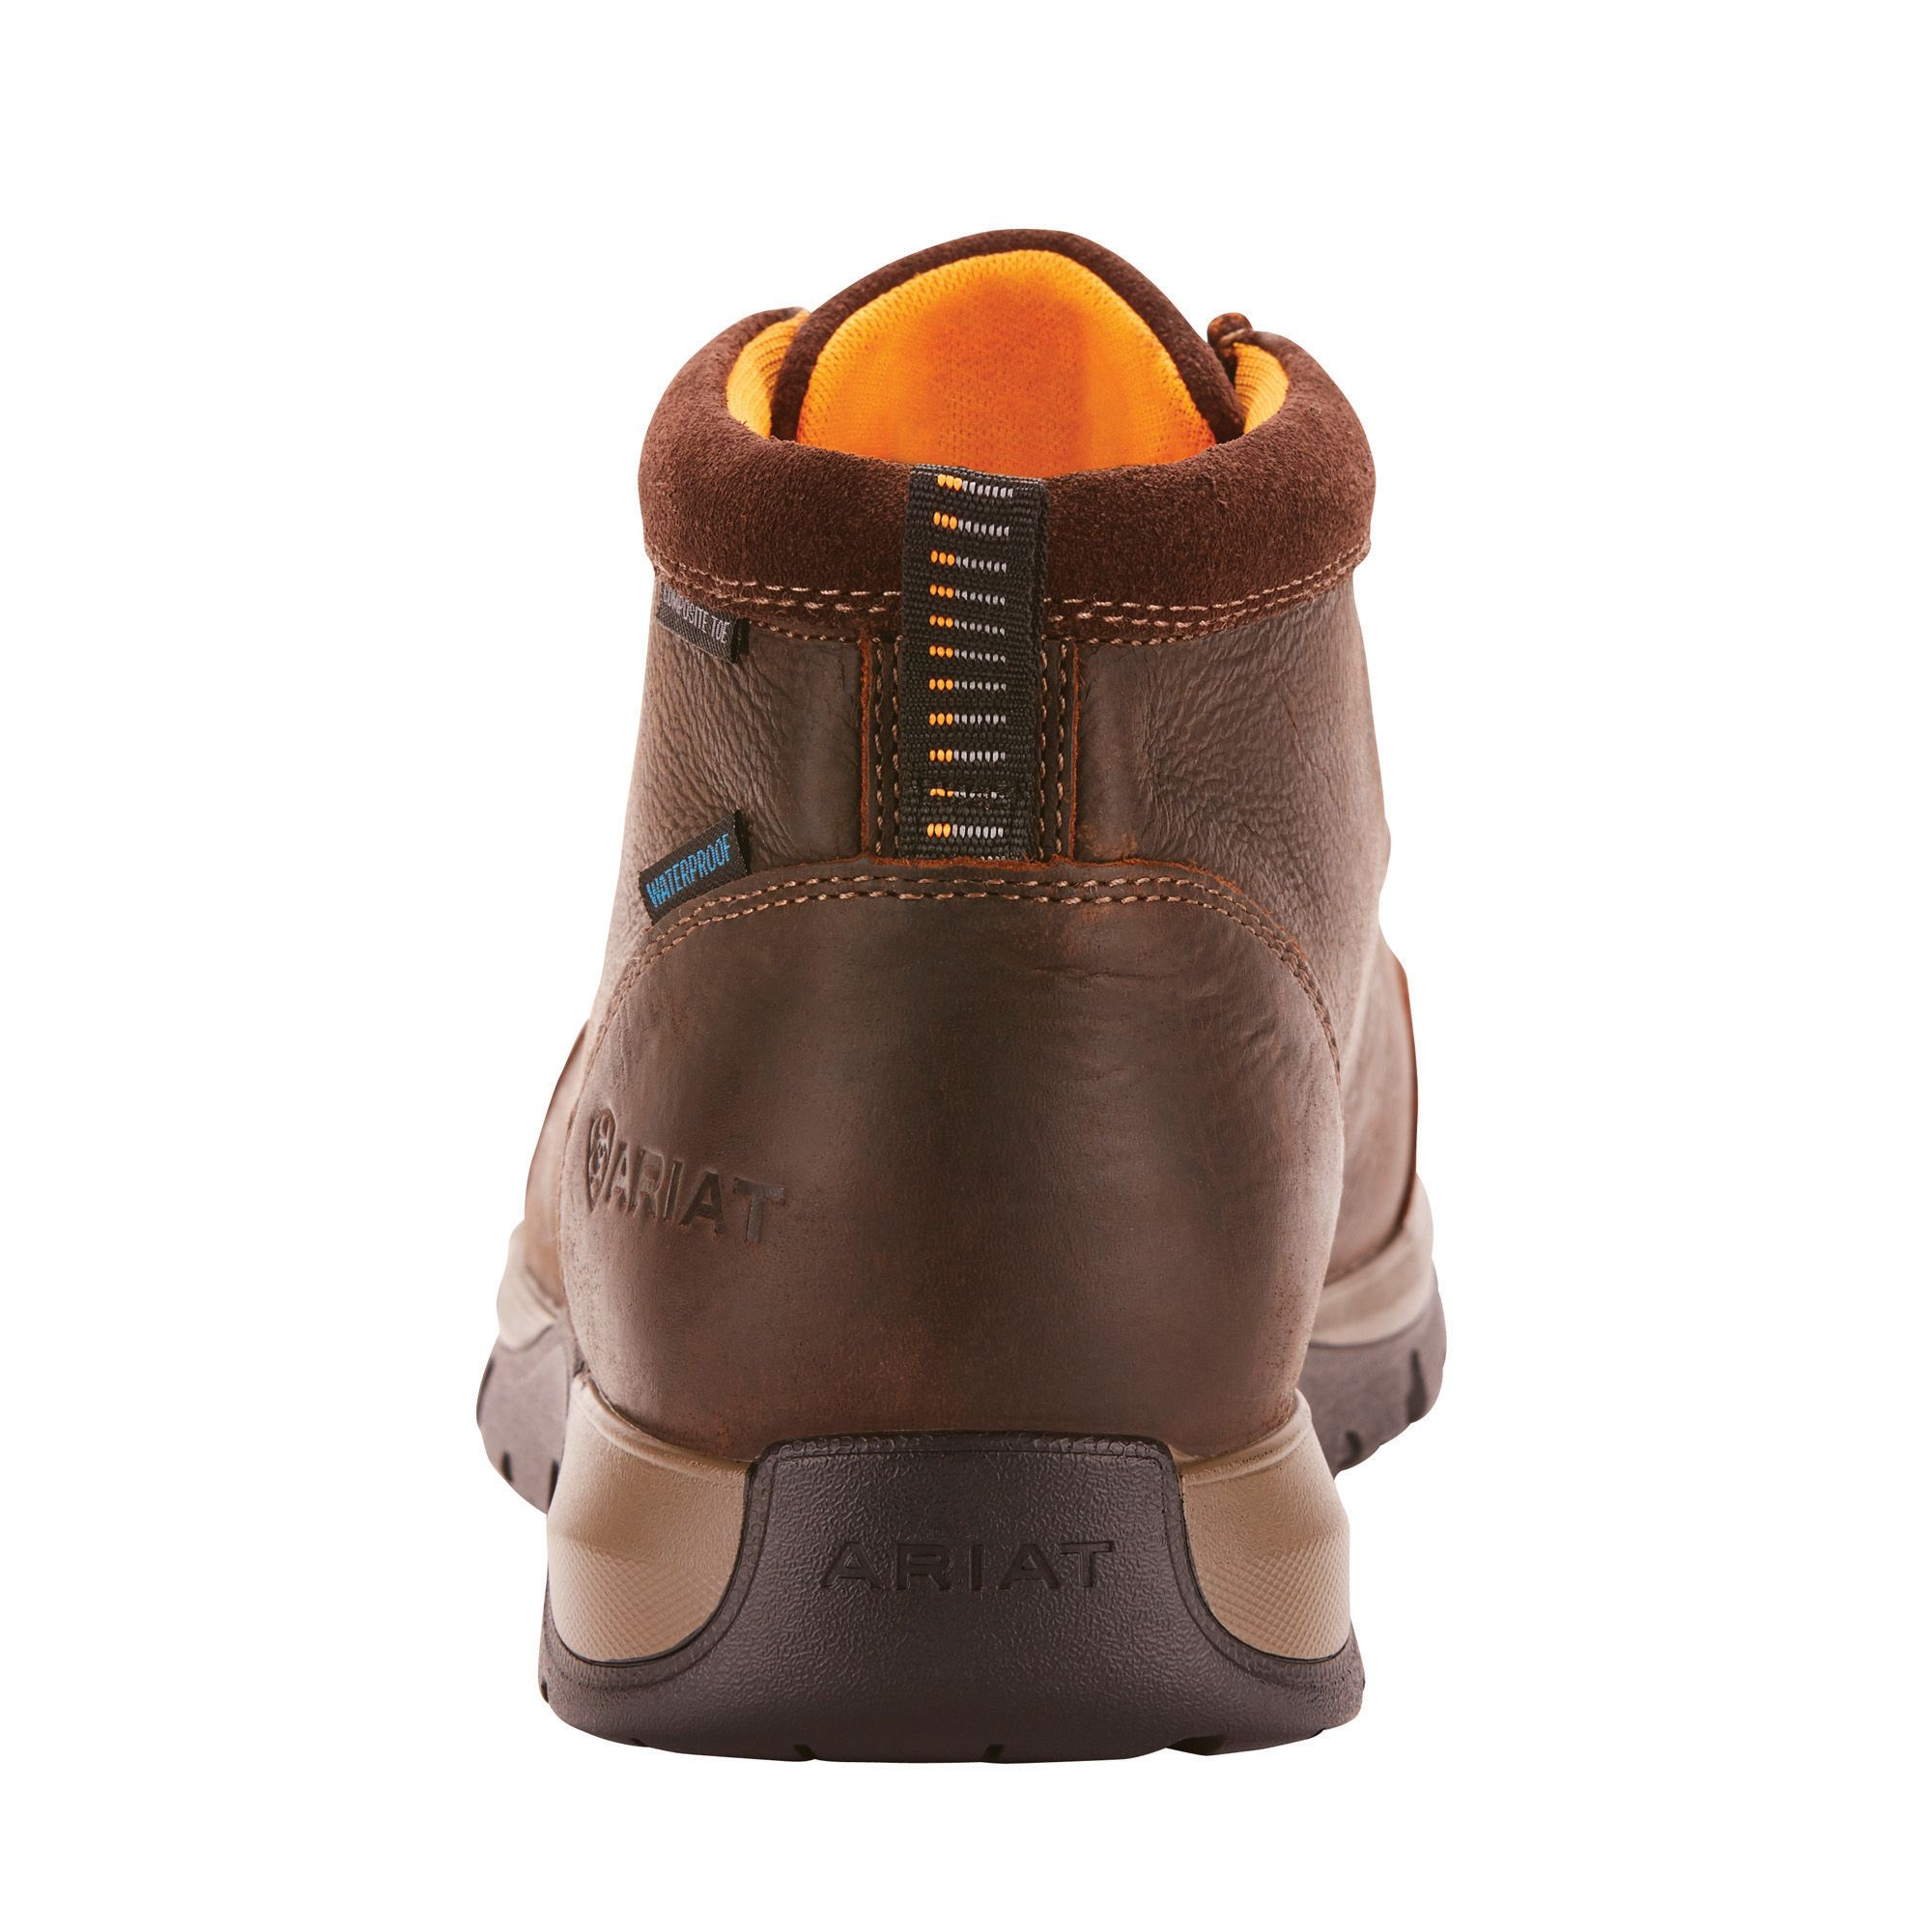 Edge Lte Moc Waterproof Composite Toe Work Boot Composite Toe Work Boots Dark Brown Leather Brown Leather